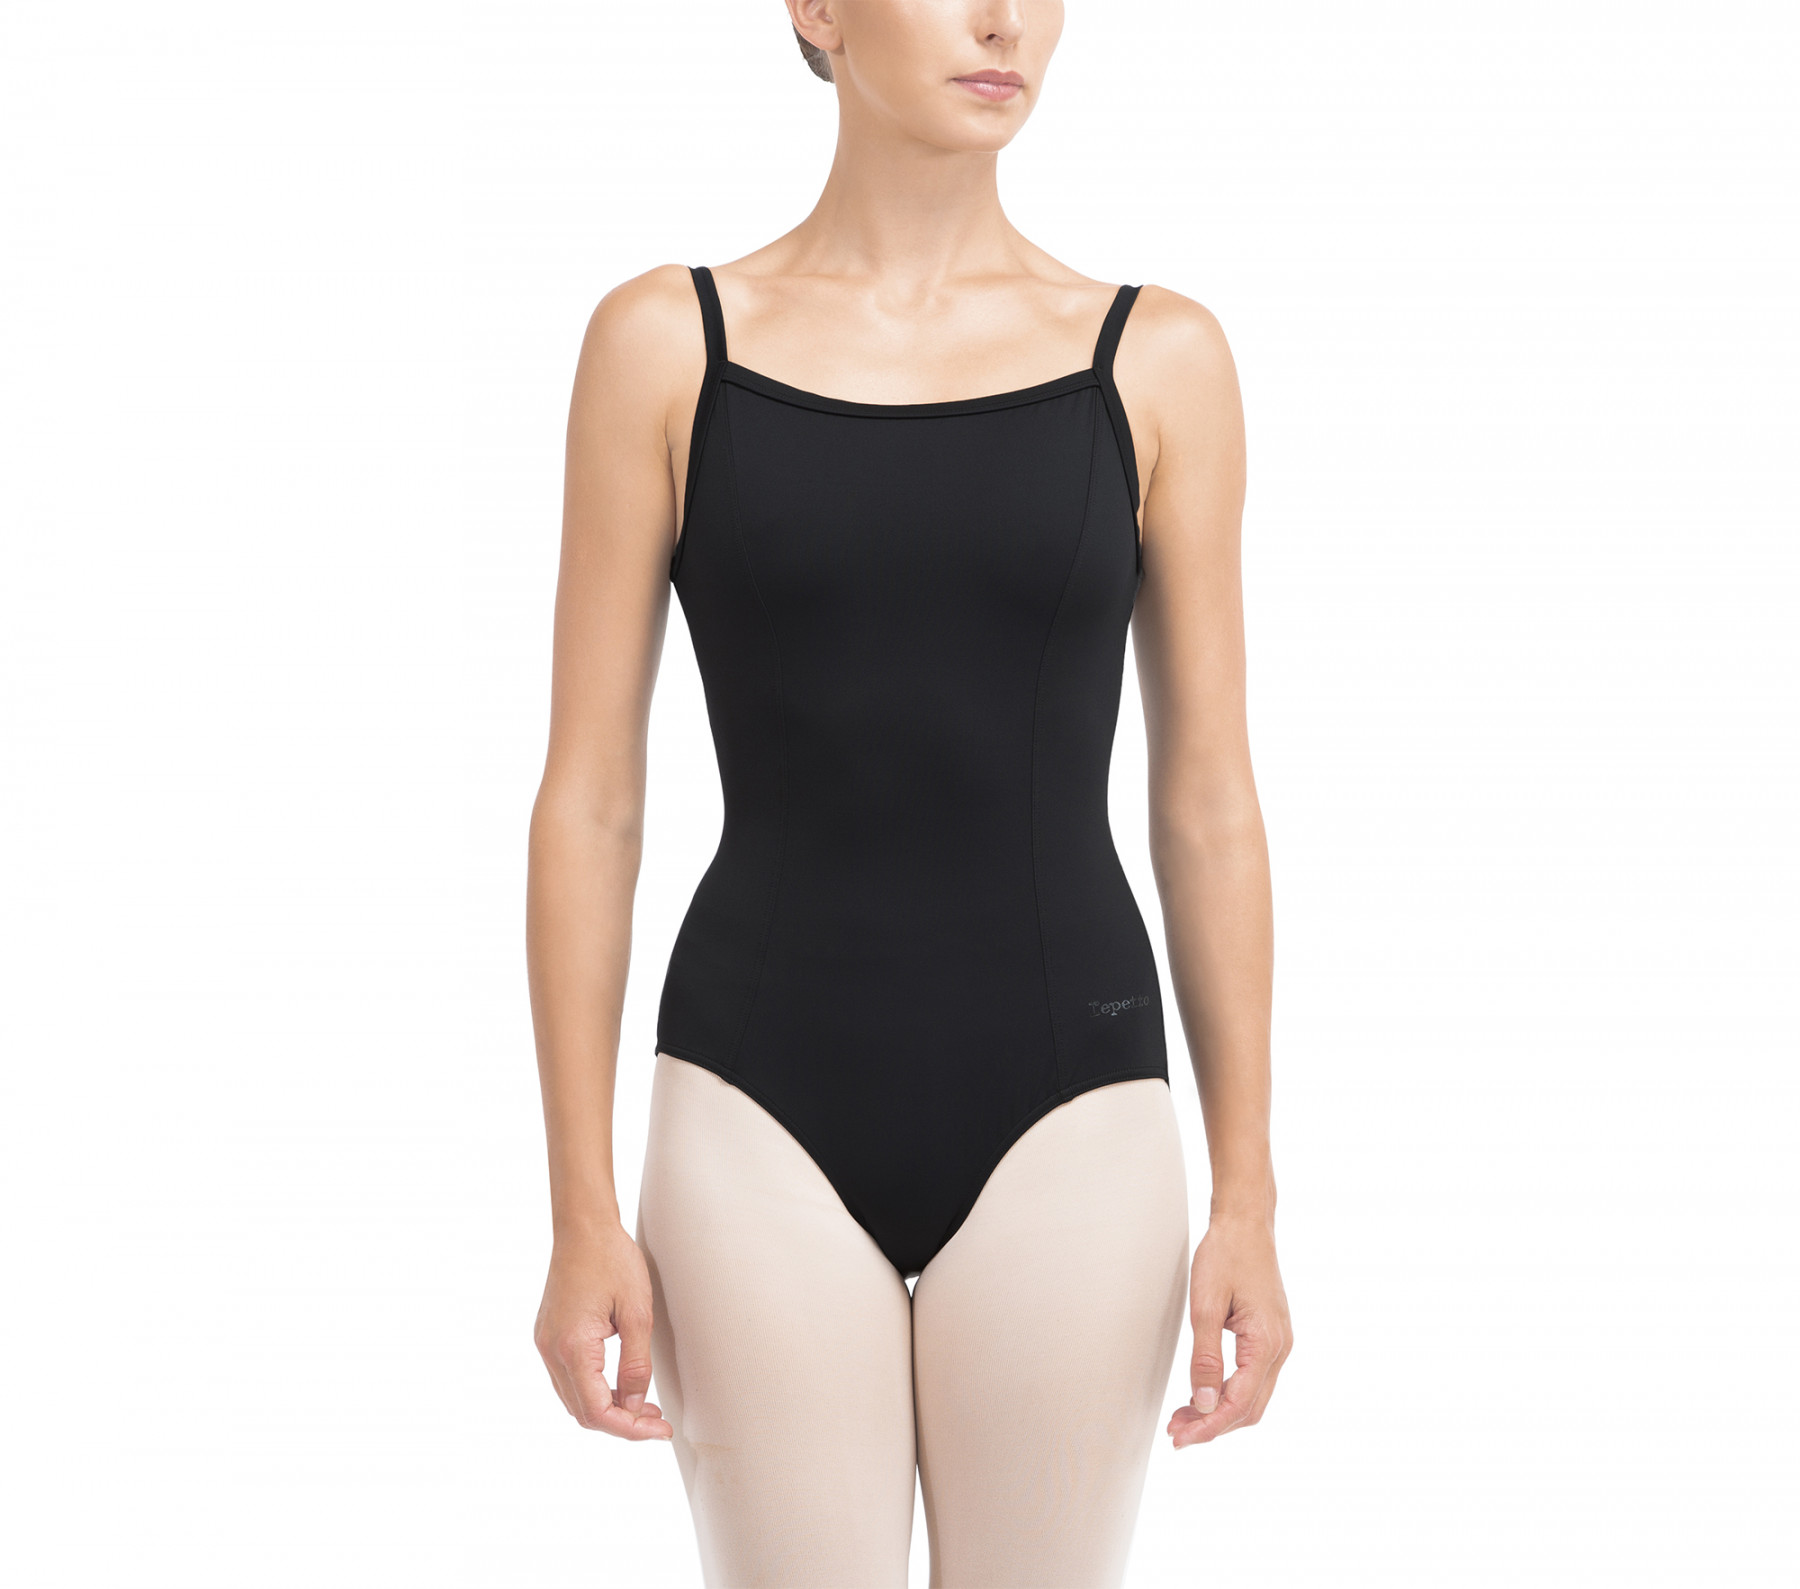 Leotard with lace in the back